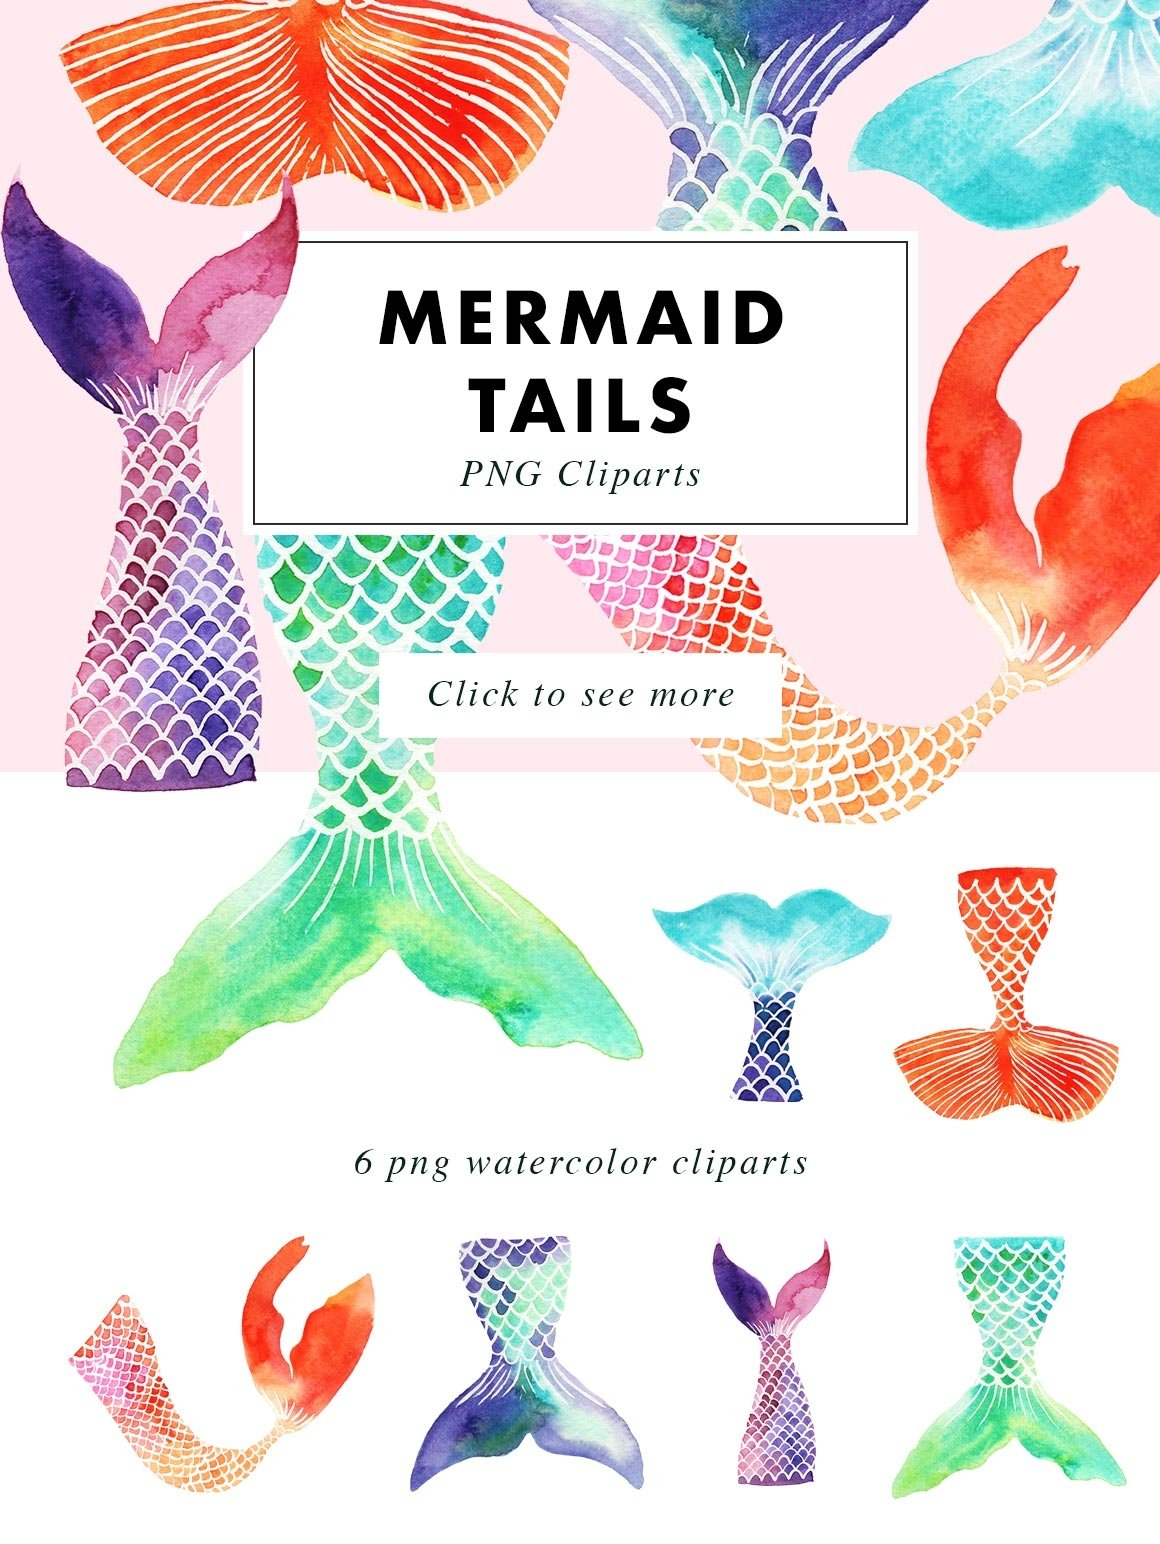 Mermaid Tails | Watercolor Illustrations Clipart example image 3